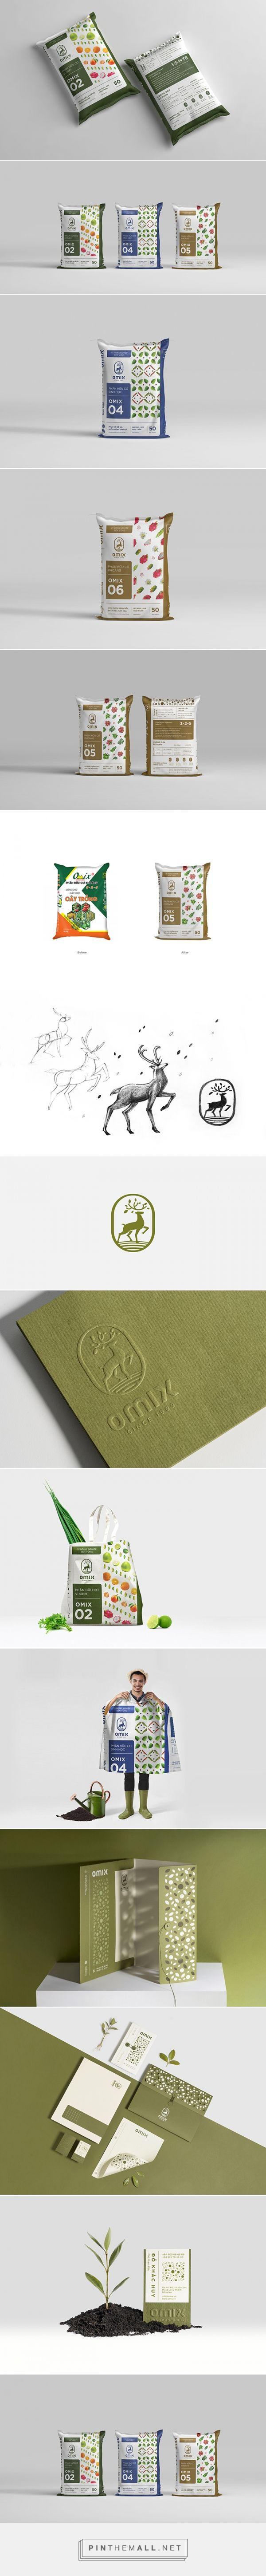 Phan Bon Omix fertilizer by Bratus Agency. Source: Daily Package Design Inspiration. Pin curated by #SFields99 #packaging #design #inspiration #ideas #innovation #creative #product #consumer #bag #color #typography #illustration #pattern #range #fertilizer #rebranding #restyling